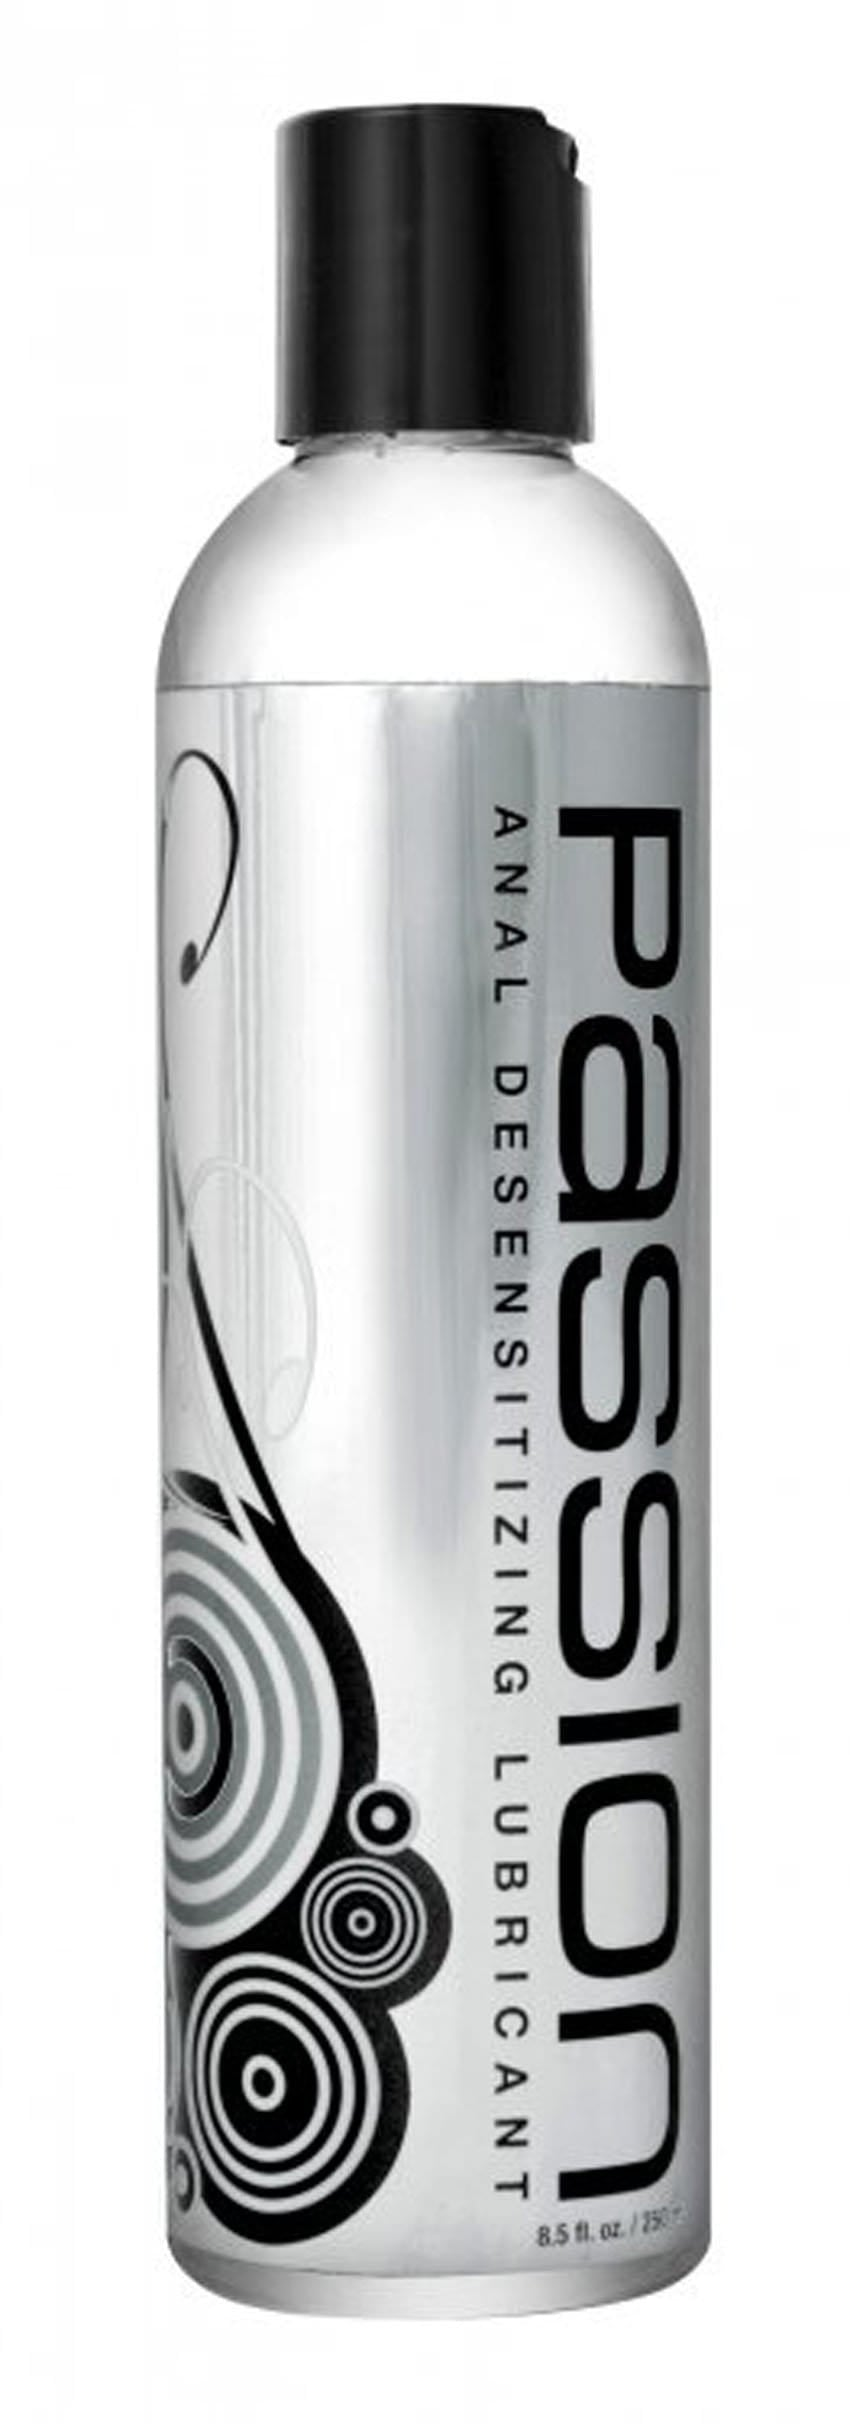 passion anal desensitizing lubricant with lidocaine 8 5 fl oz